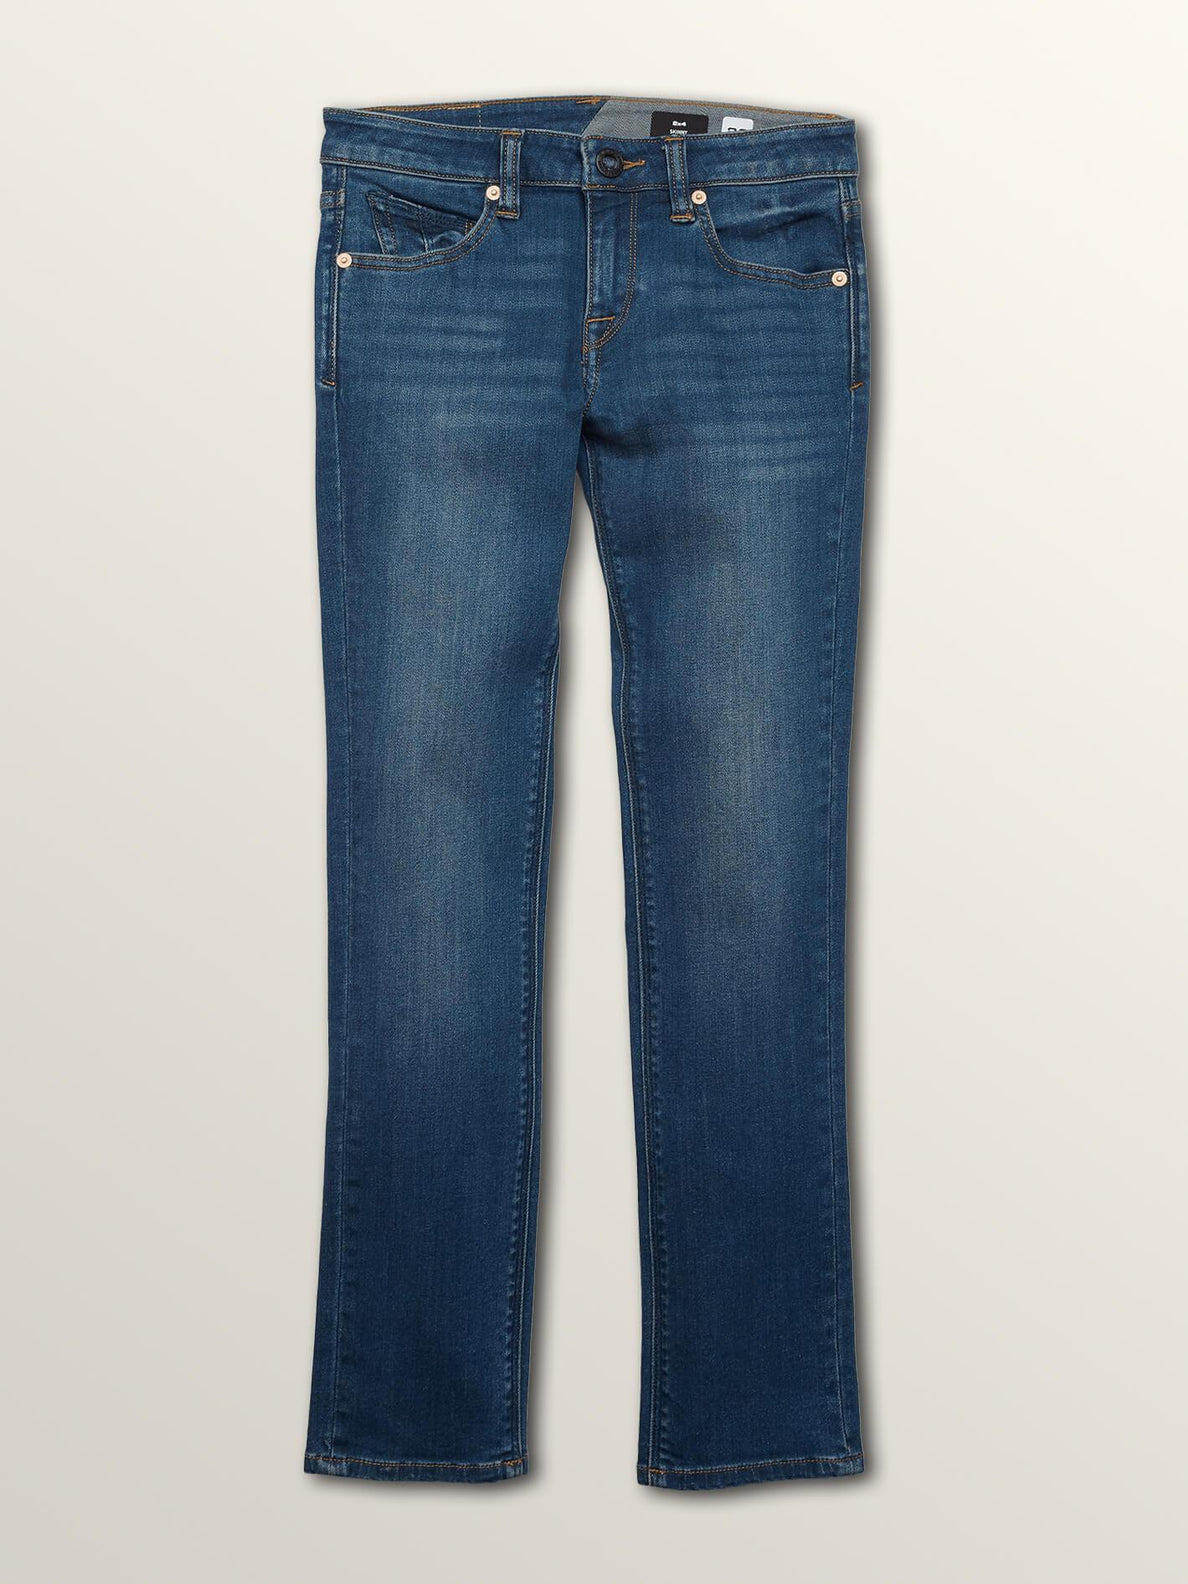 Big Boys 2X4 Skinny Fit Jeans In Dust Bowl Indigo, Front View